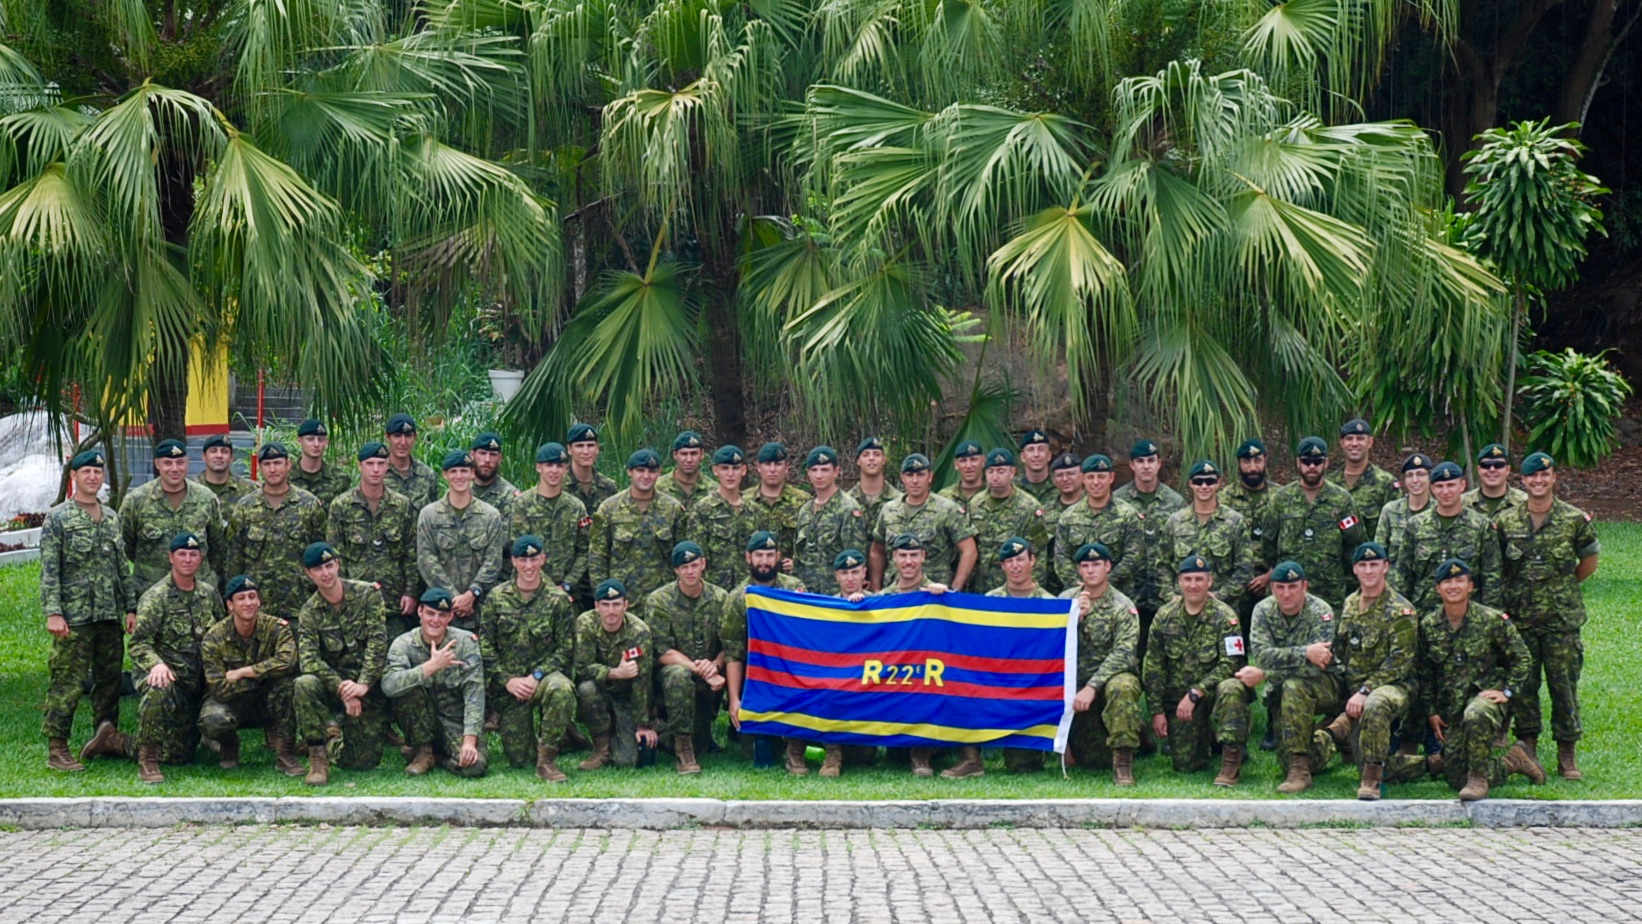 The Canadian Army delegation to the South American exercise UNITAS-AMPHIBIOUS held in Brazil from November 14 to 25, 2015. Photo by: Capt Ken Wang, 2nd Batallion Royal 22e Régiment. ©2015 DND-MDN Canada.